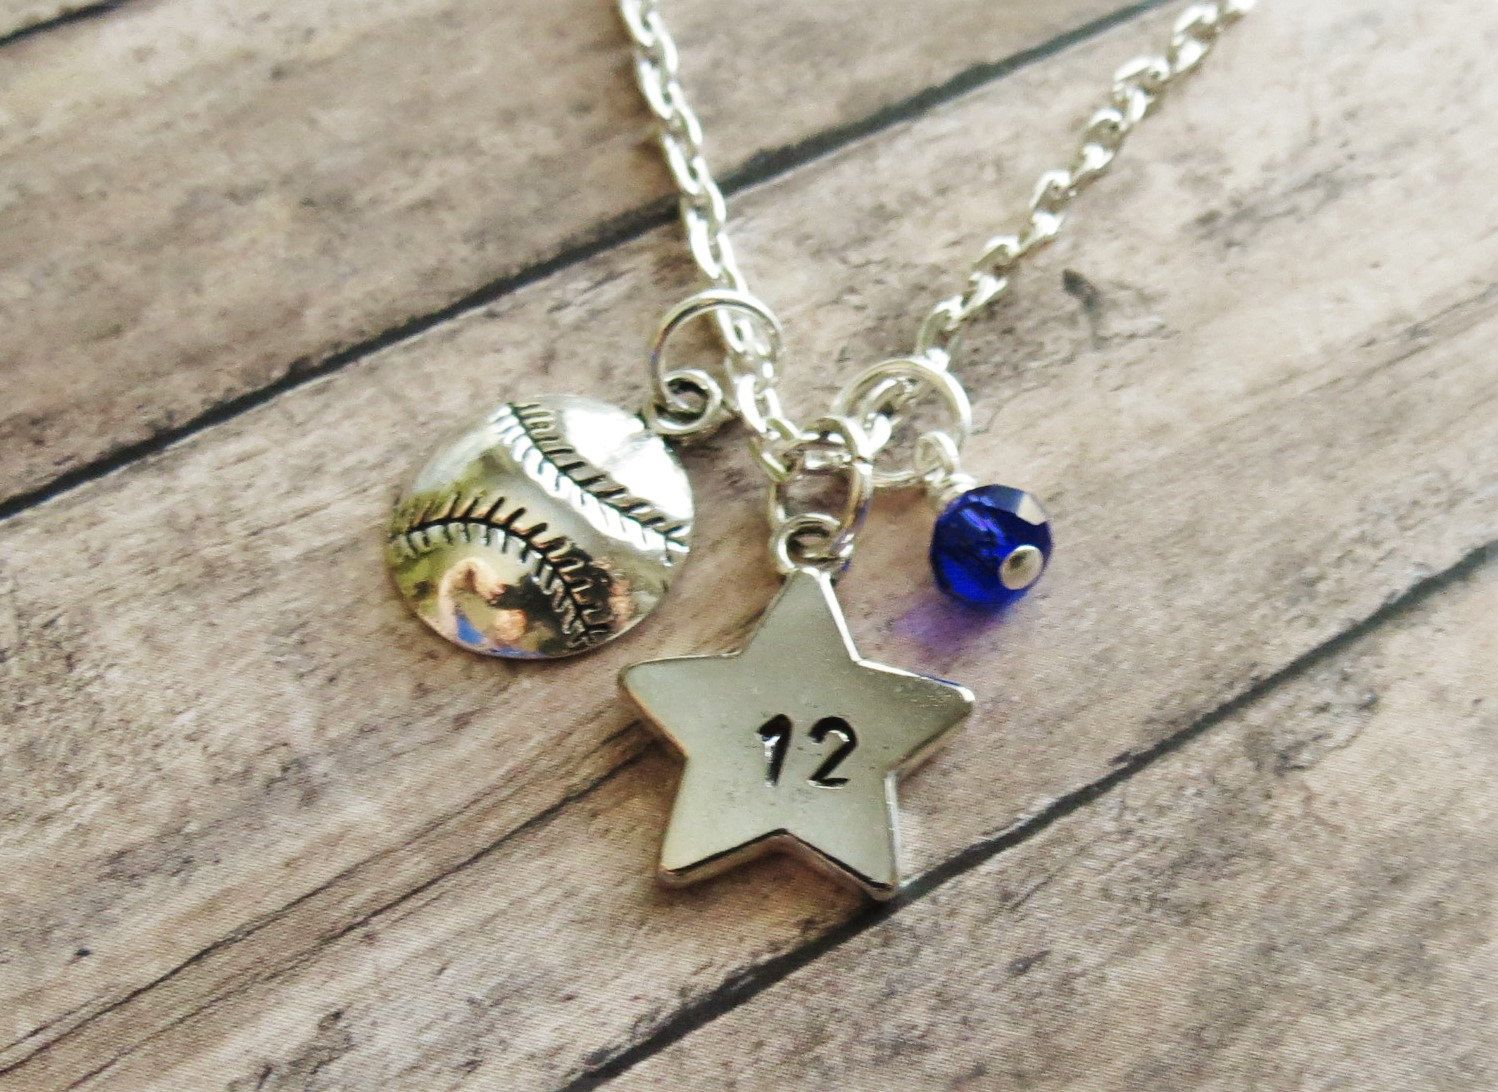 viralstyle campaigns campaign necklace large softball front app prayer